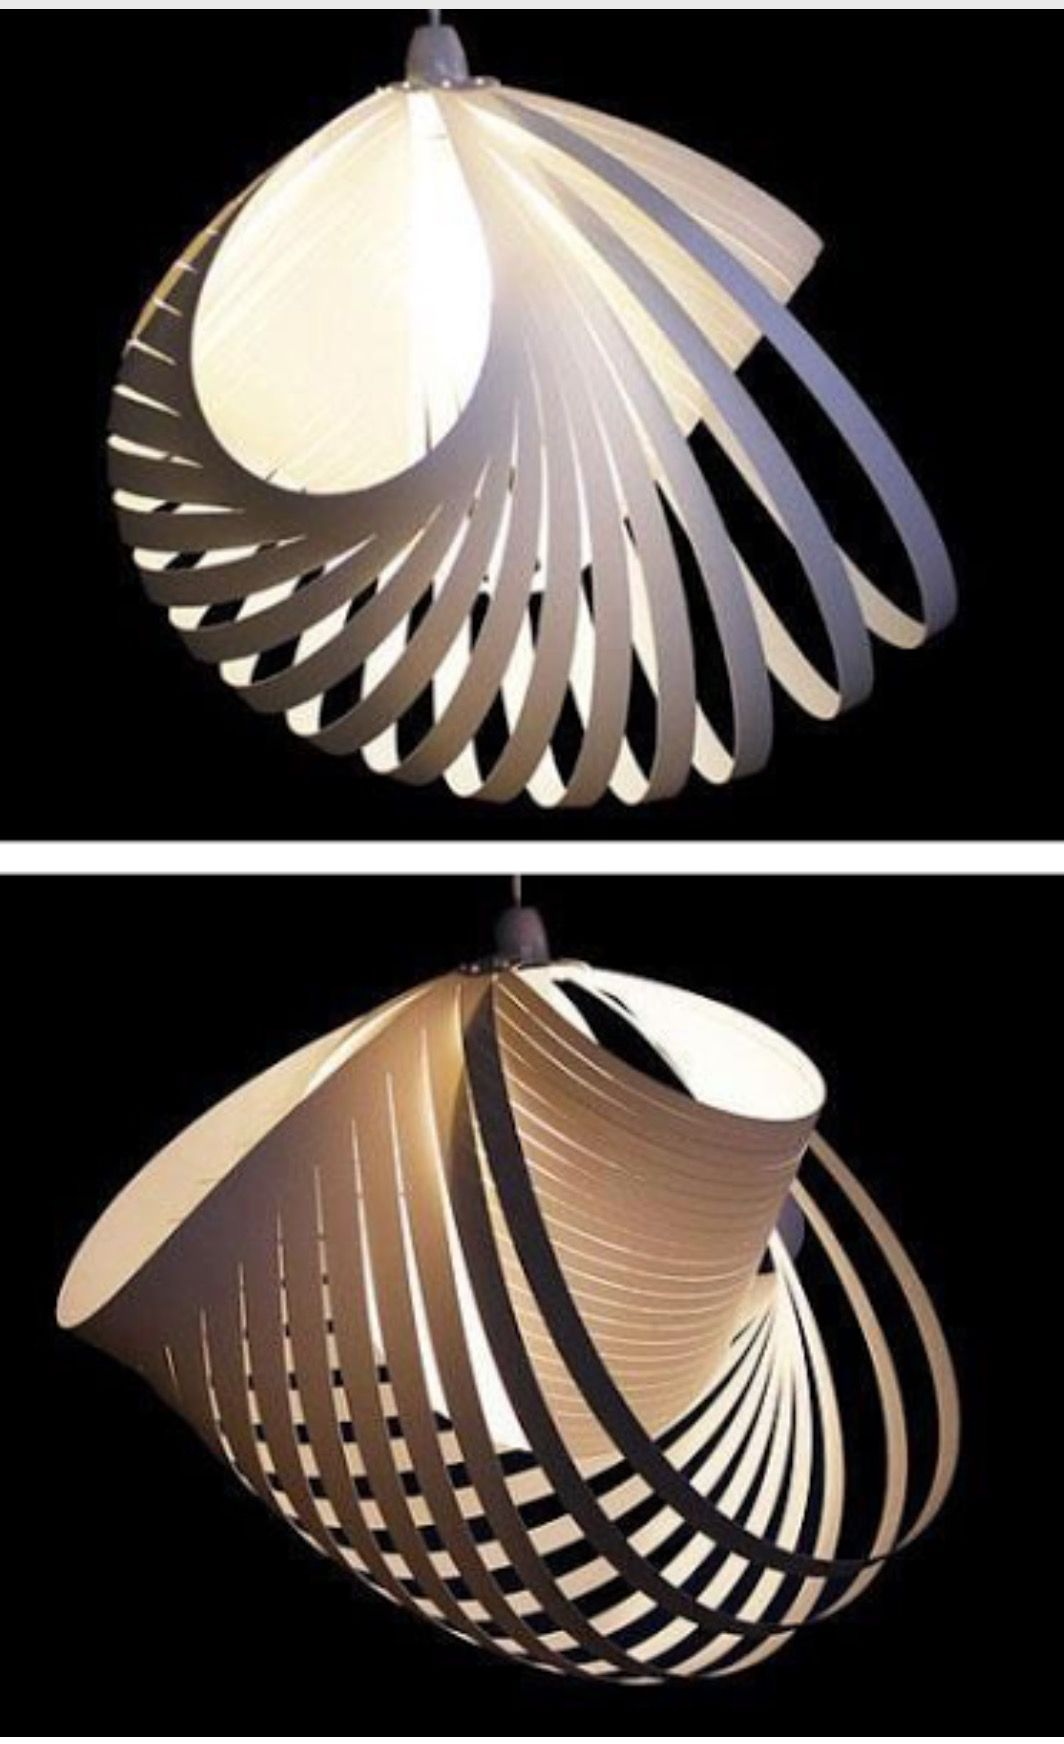 Pinterest Küchenlampe Diy Lampe Papier Fosterginger Pinterest Commore Pins Like This